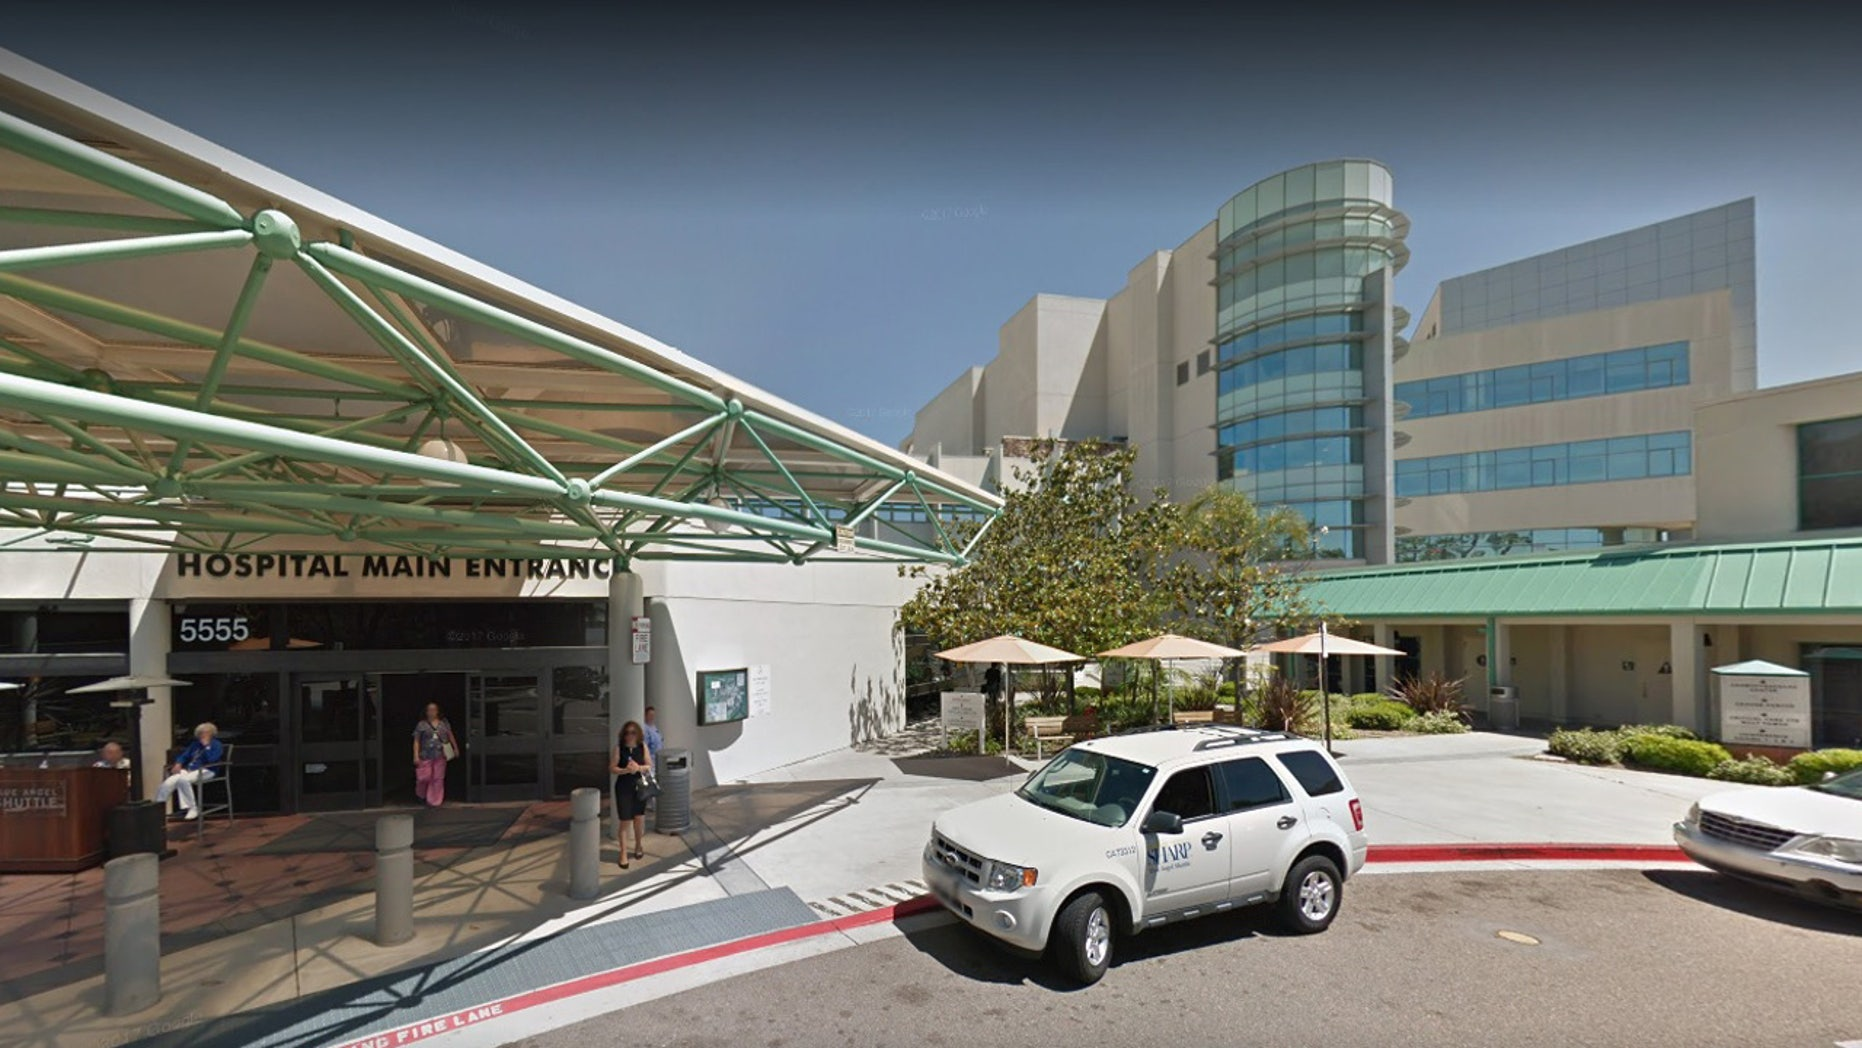 Sharp Grossmont Hospital in La Mesa, Calif., Issued a statement Monday apologizing to more than 80 women at the medical facility, saying they were accidentally recorded by motion-activated cameras